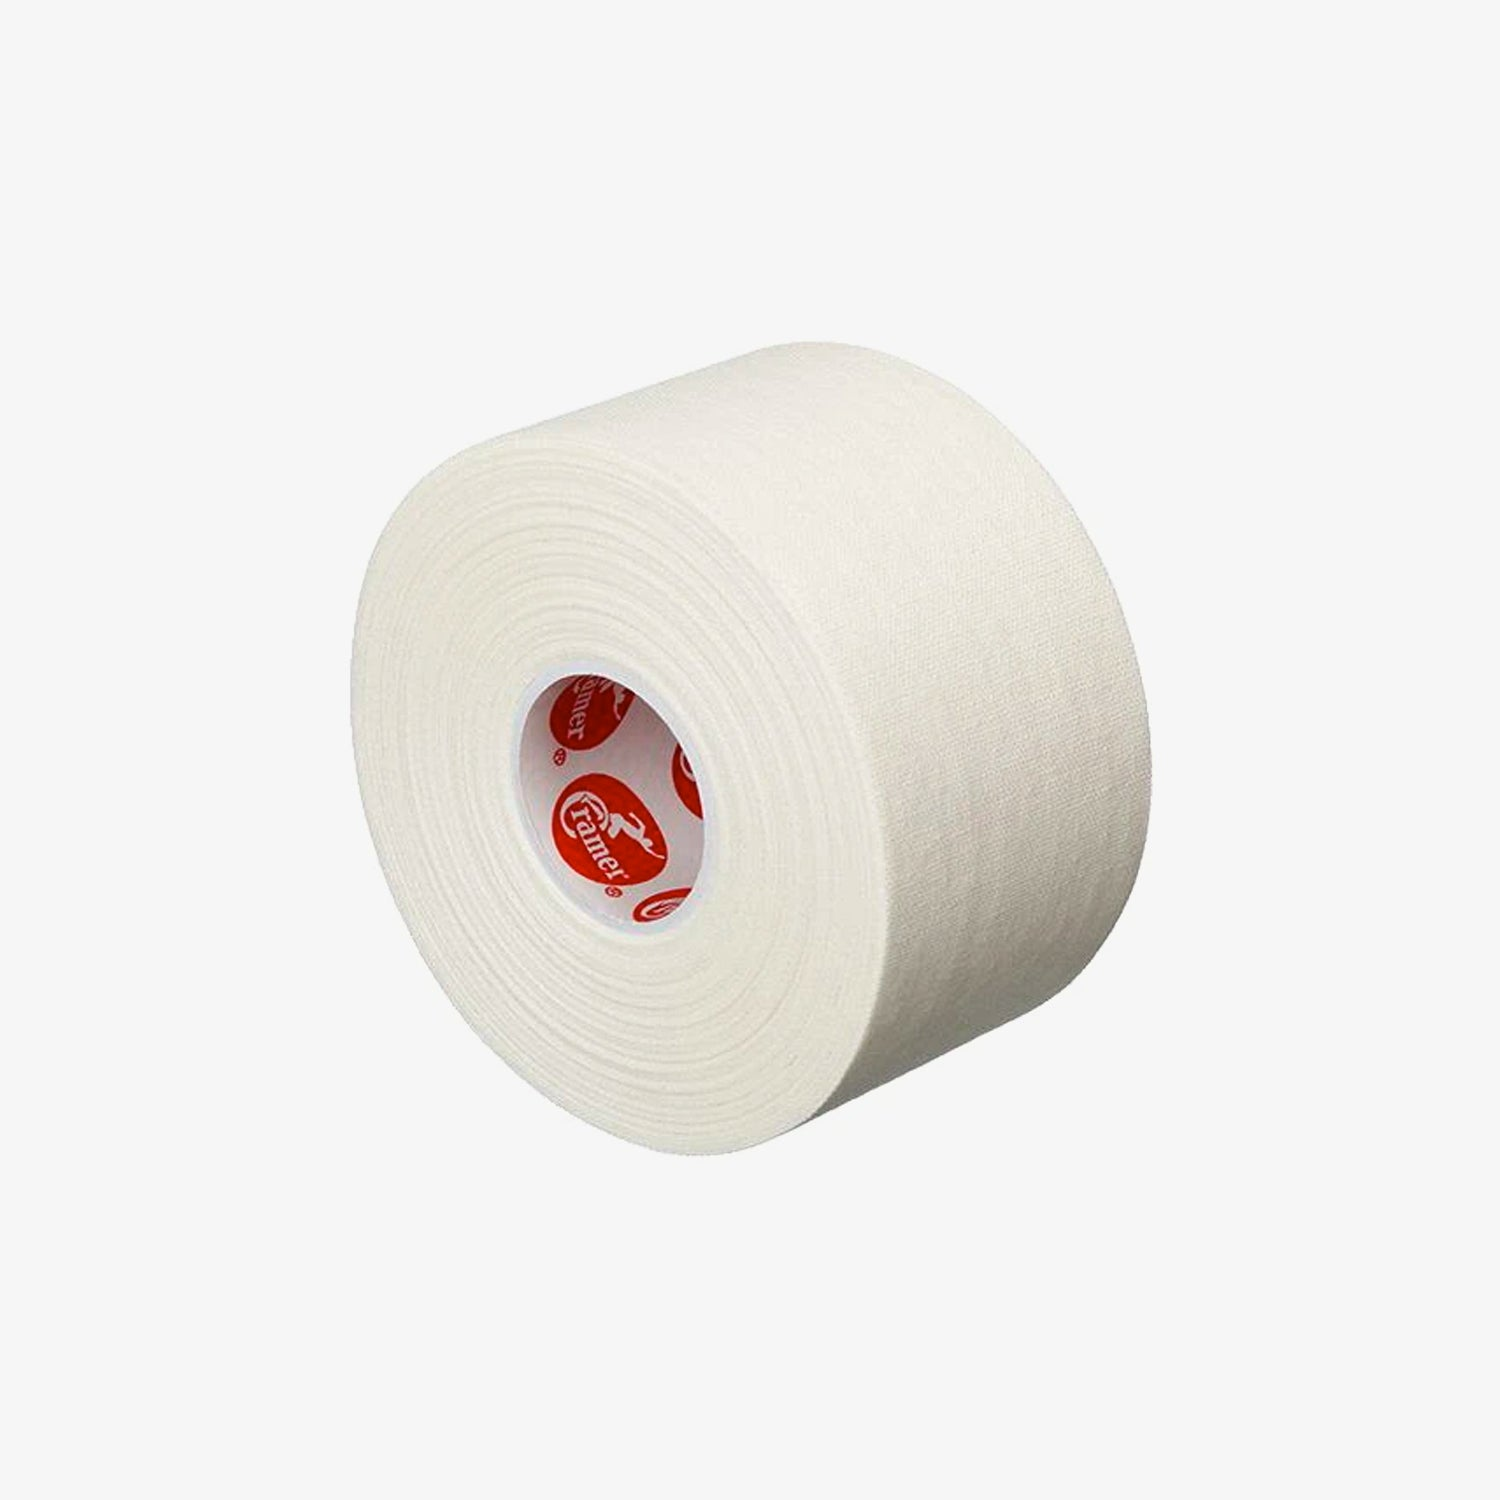 "750 Athletic Trainers Tape White 1.5"" (1 Roll)"